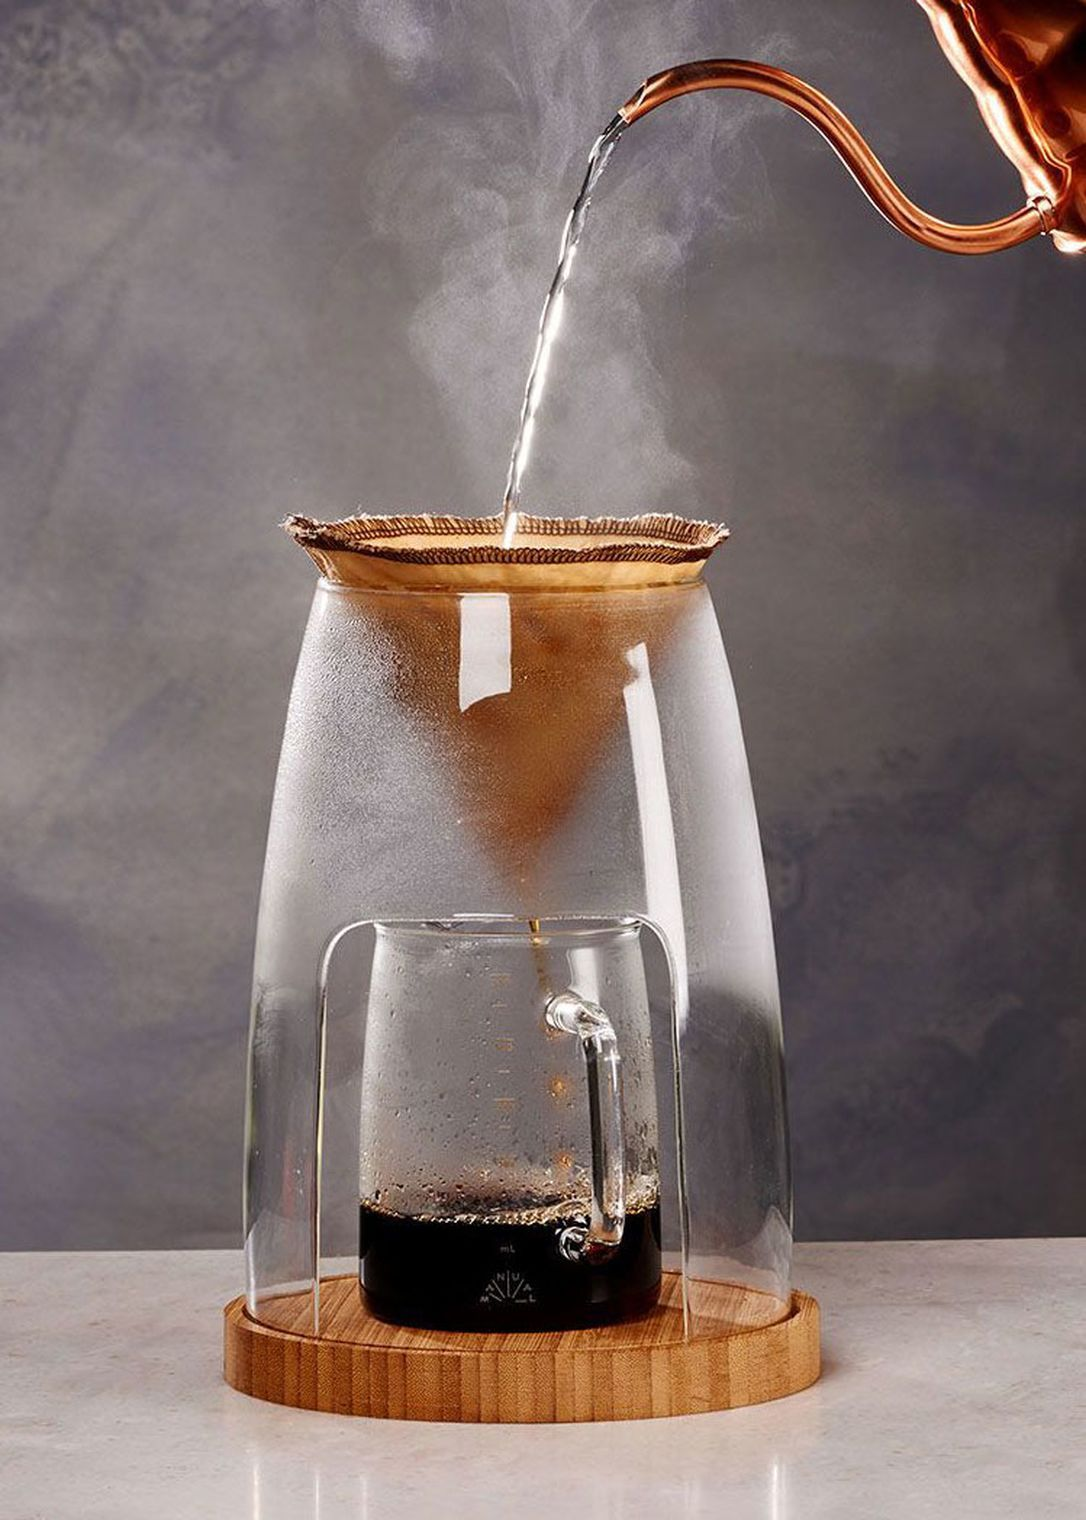 This pourover coffee maker is designed to elevate the